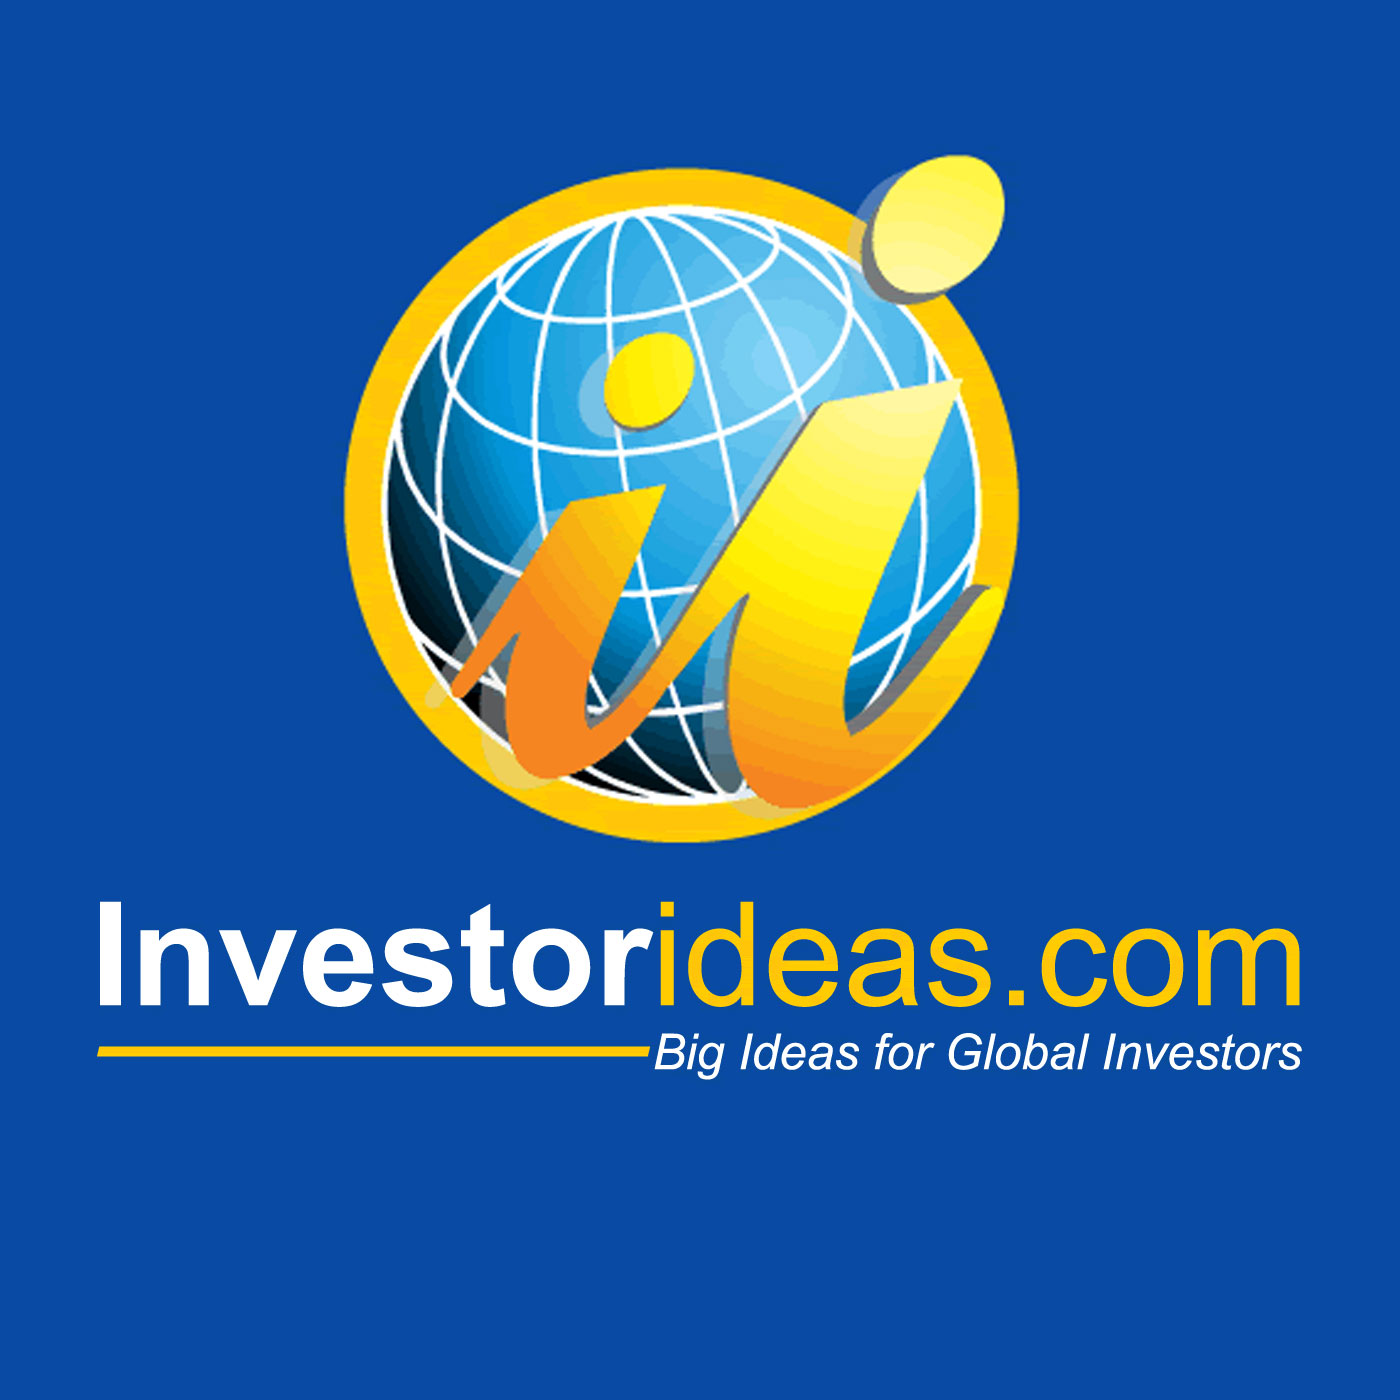 Investor Ideas Potcasts, #Cannabis News and #Stocks on the Move; (CSE: DIXI.U) (OTCQX: DXBRF) (CSE: AUSA) (CSE: BEV)